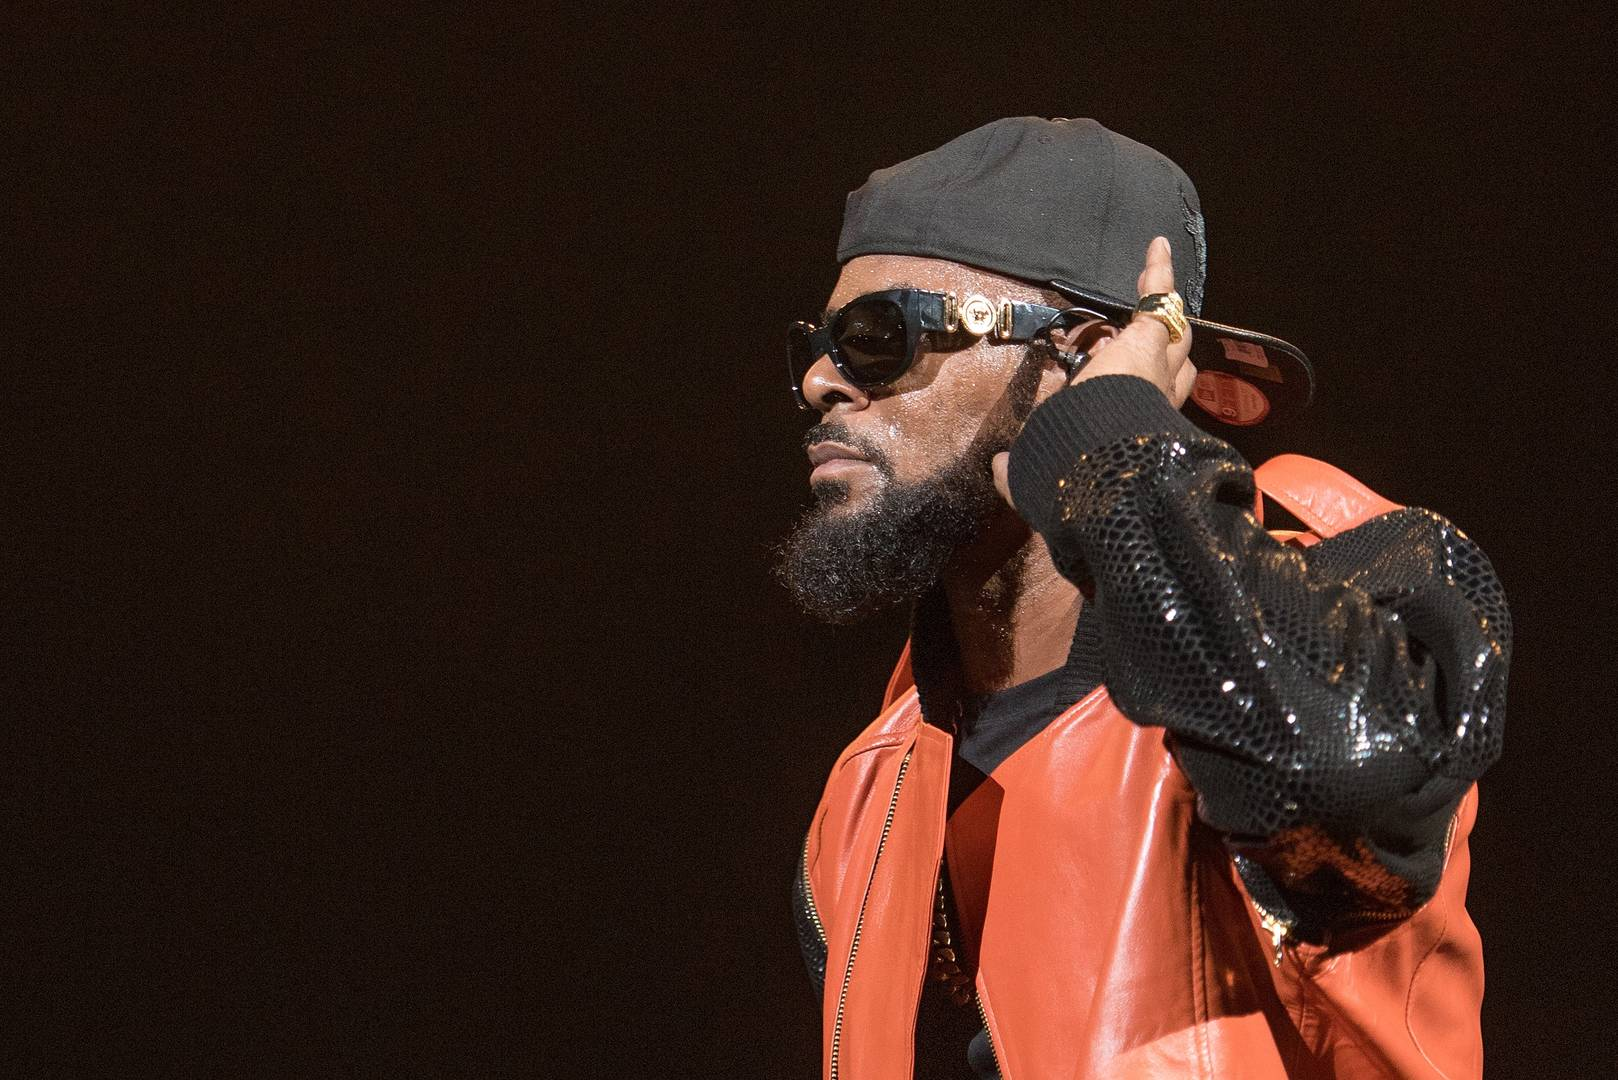 R. Kelly's accuser wins judgment in suit singer failed to answer